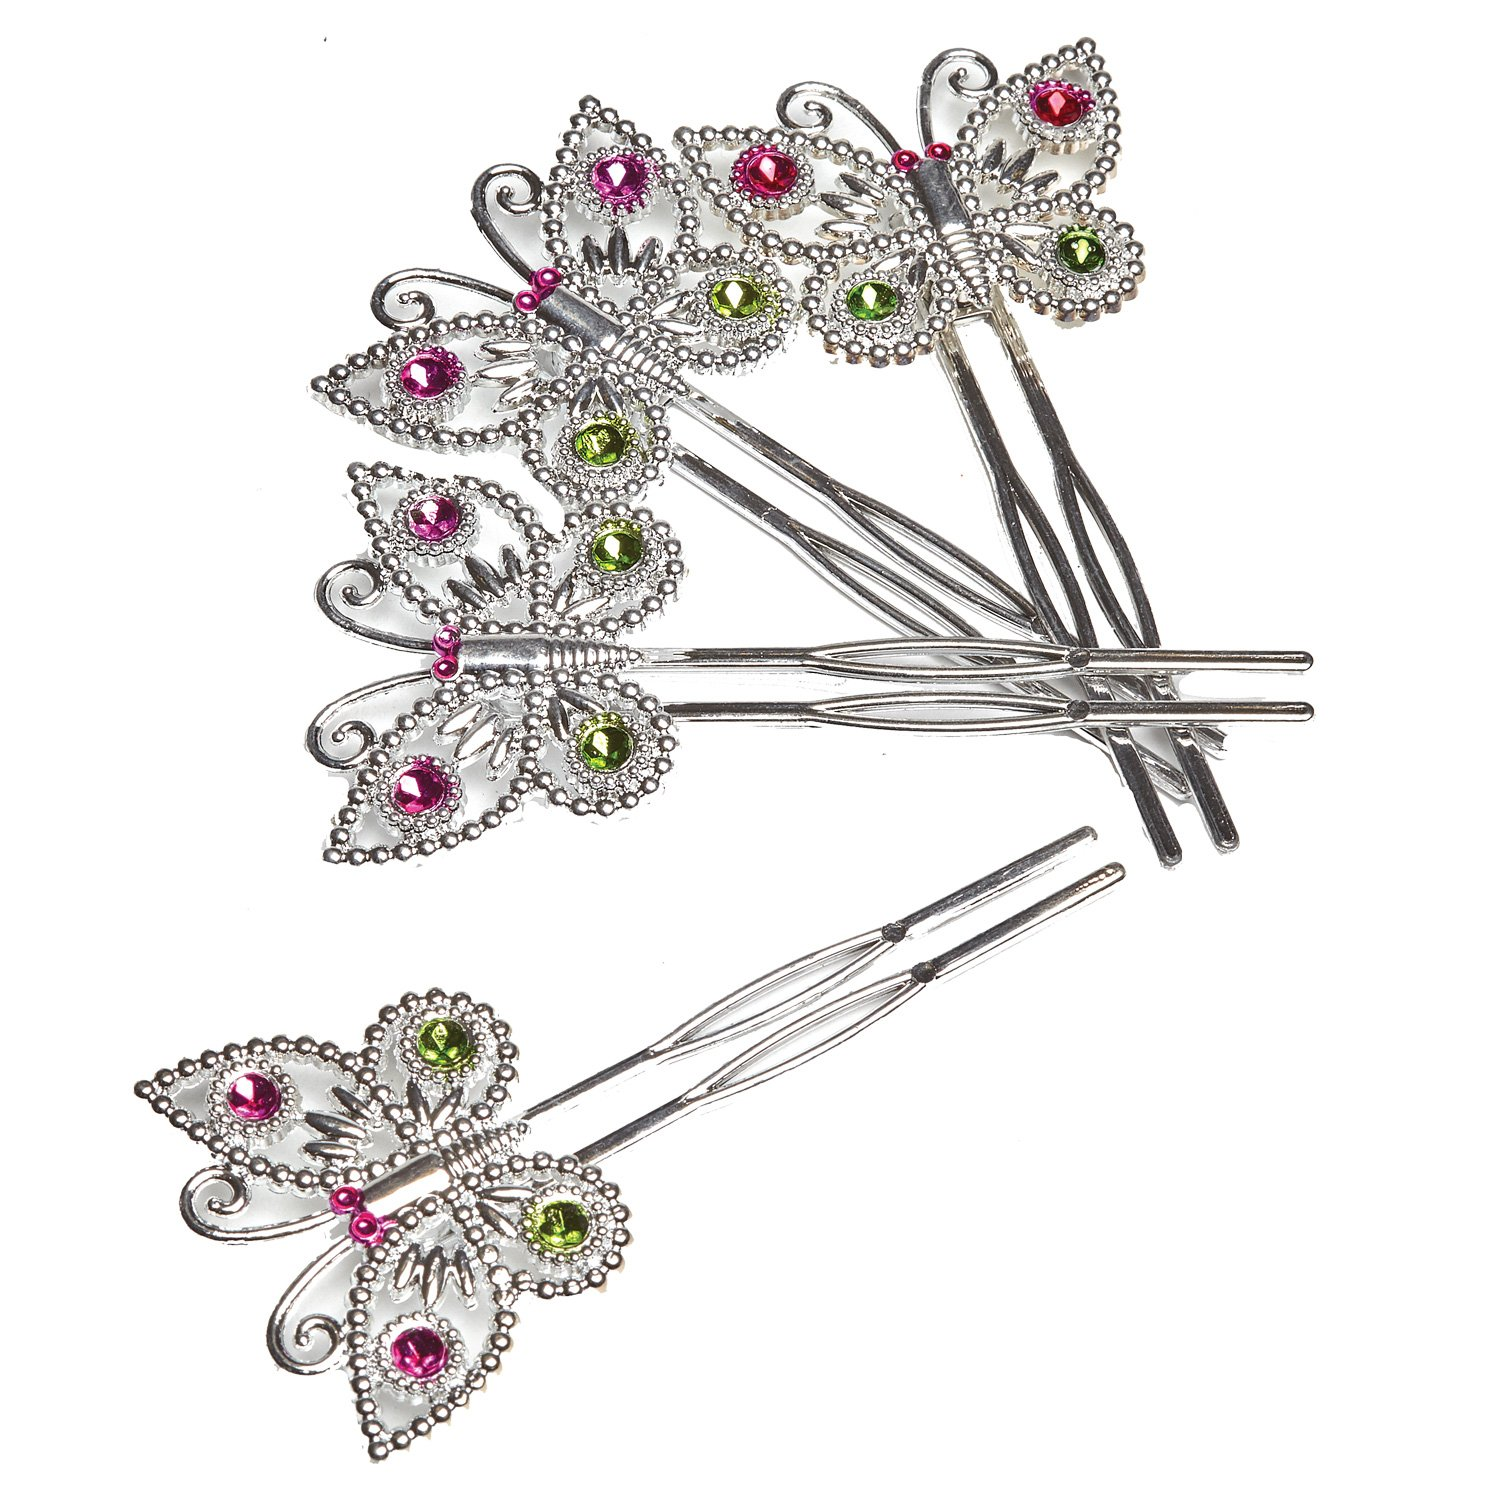 Amscan Box of 152 Butterfly Hair Pins Party Favours/Fillers by Amscan